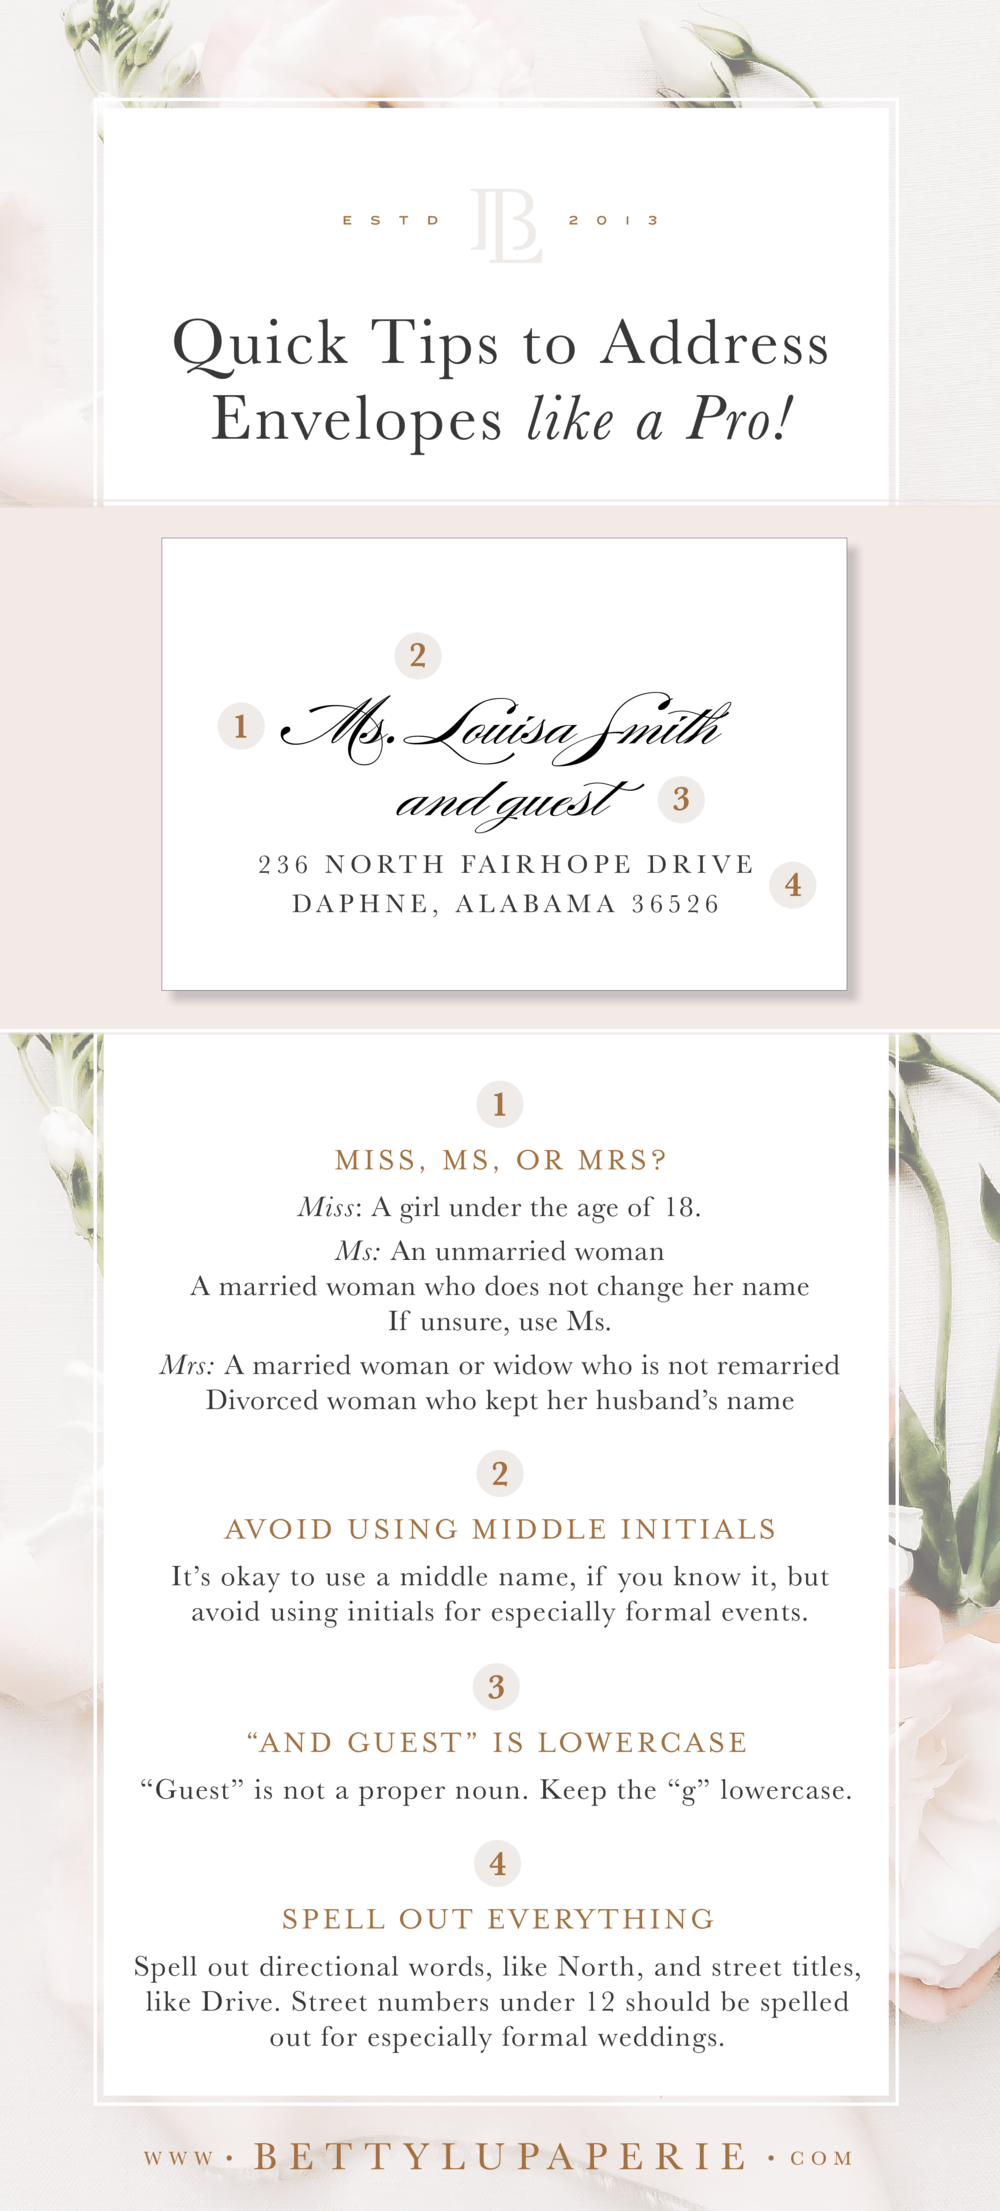 How To Address Wedding Invitation Envelopes Like A Pro Betty Lu Paperie Addressing Wedding Invitations Wedding Invitation Envelopes Wedding Invitation Wording Formal